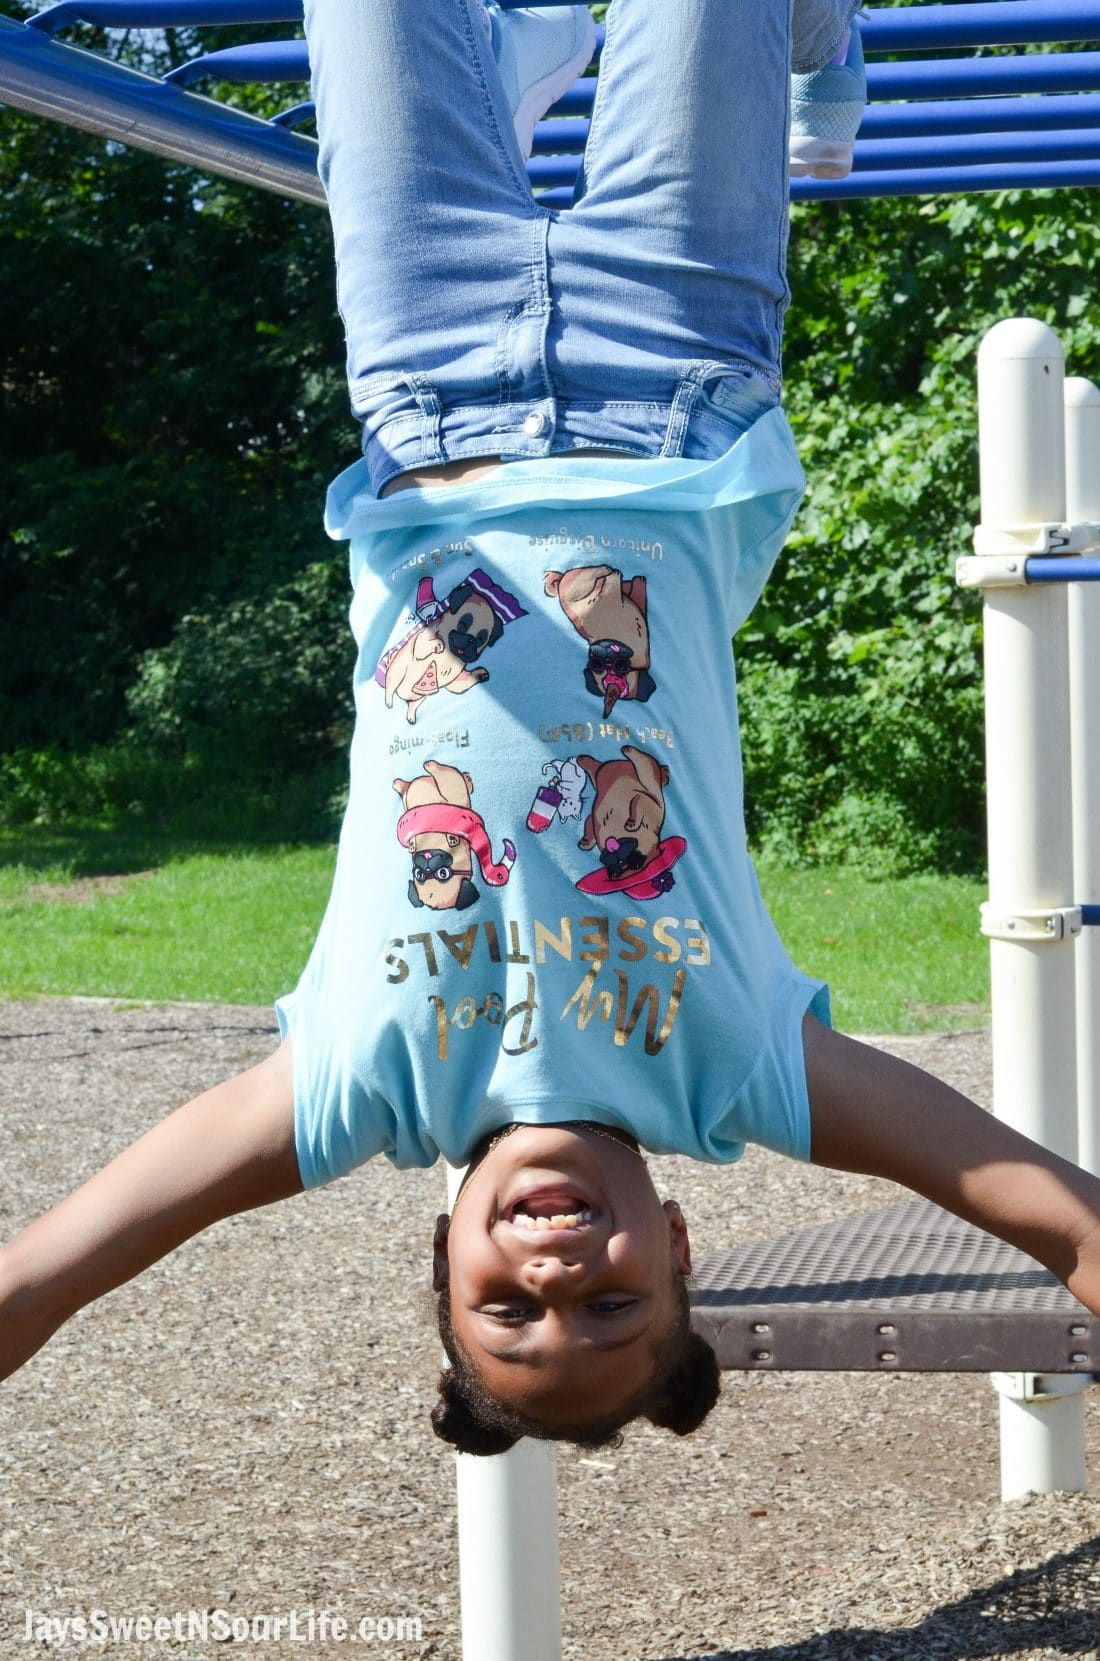 Justice Back To School Shirt Lifestyle Monkey Bars. Back To School Must Have Fashion For Tweens via JaysSweetNSourLife.com